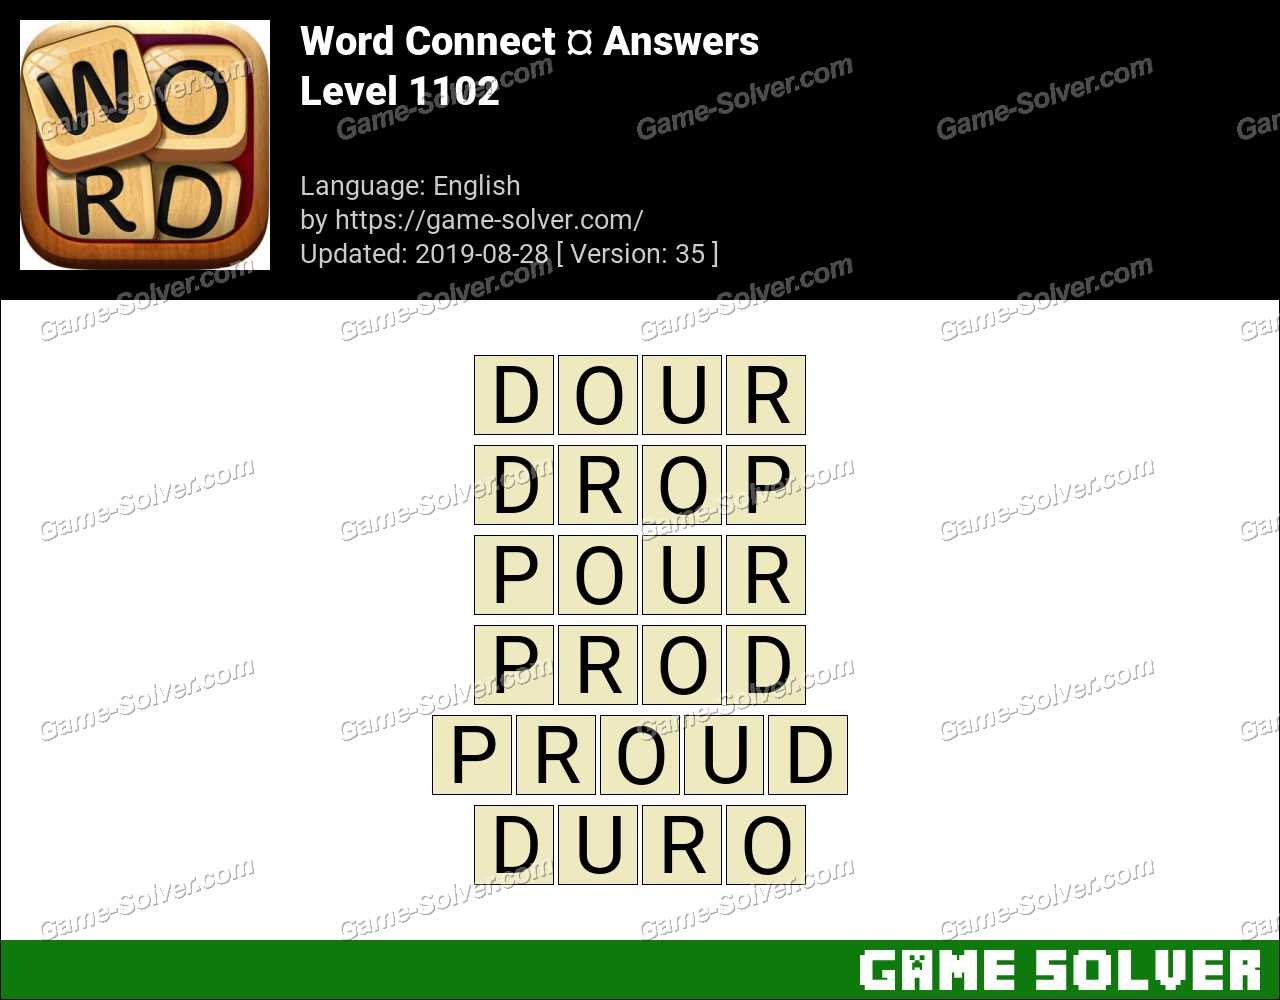 Word Connect Level 1102 Answers